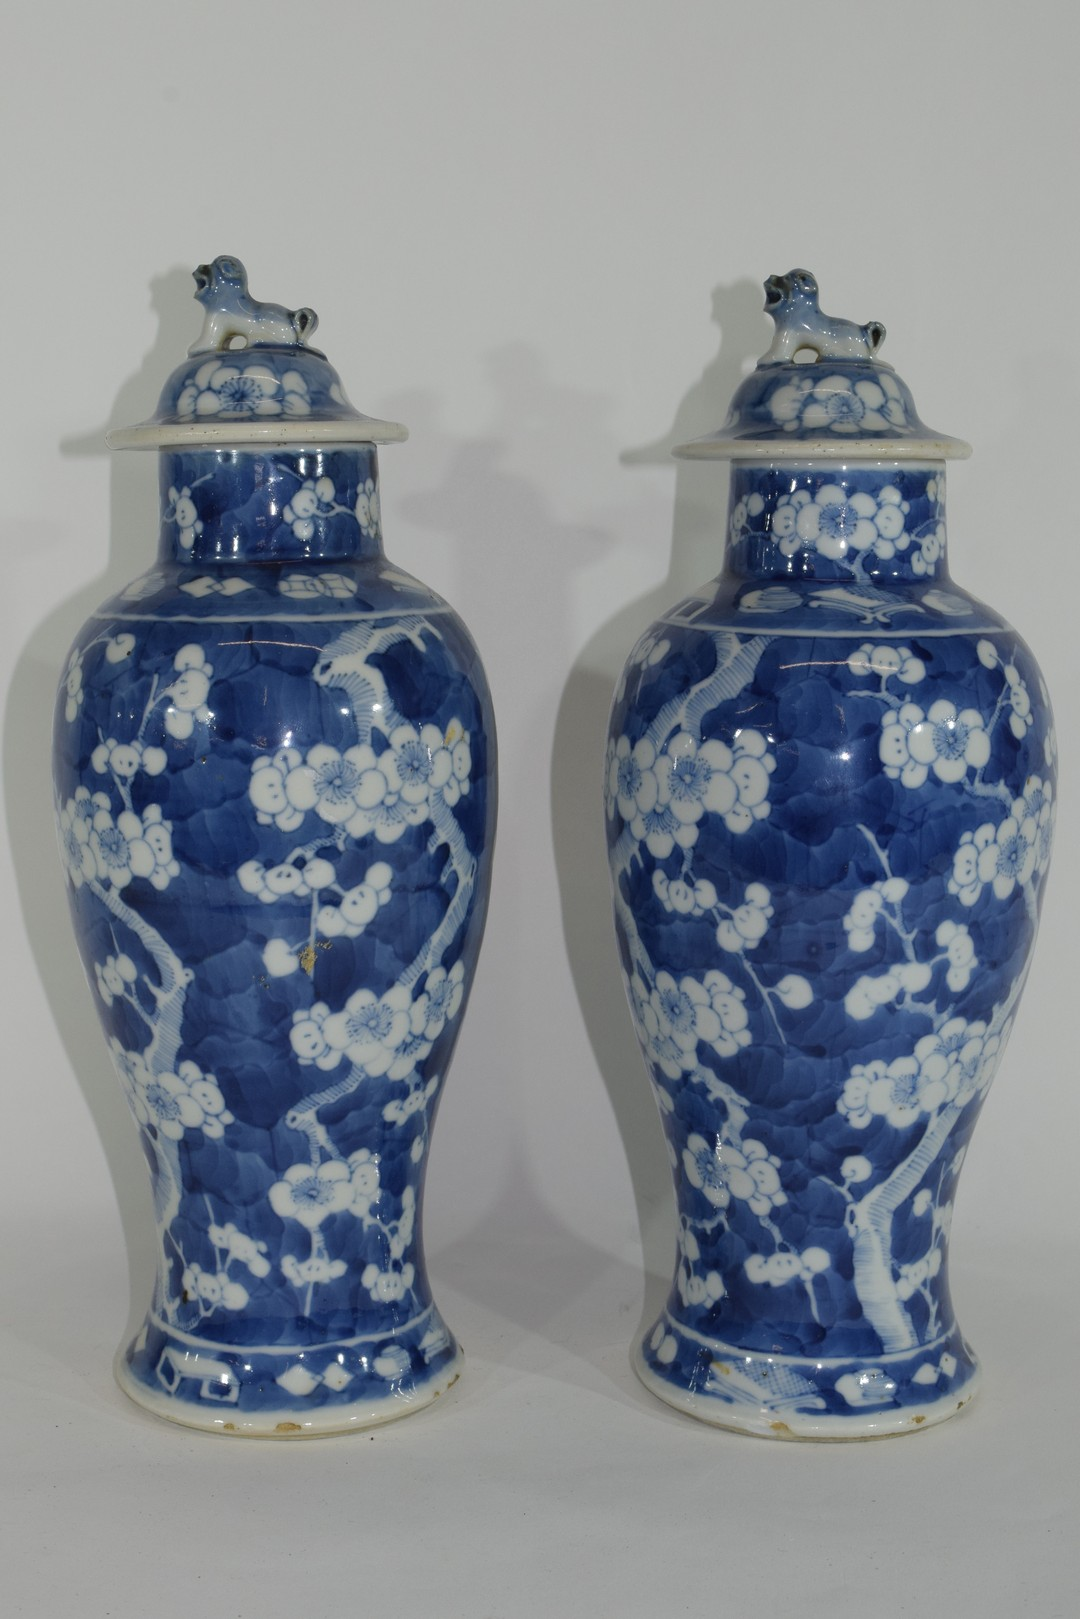 Pair of 19th century Chinese porcelain vases and covers